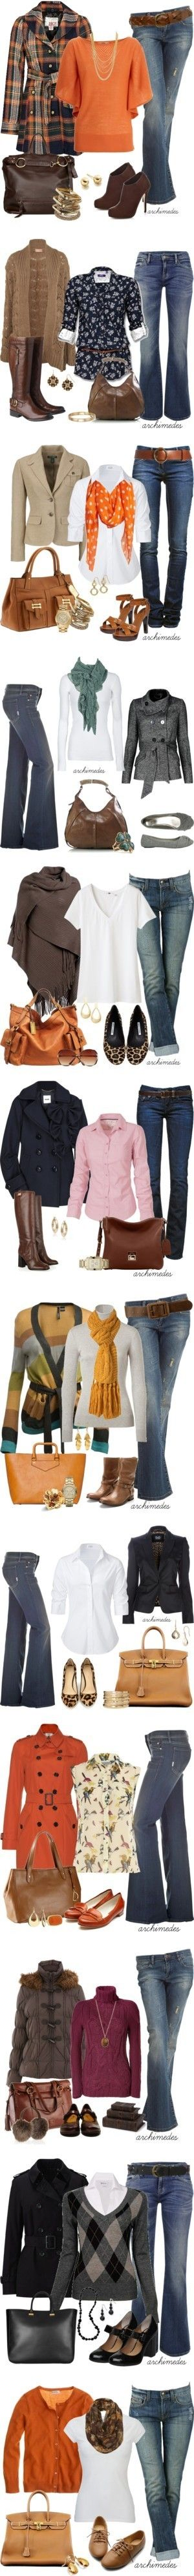 winter jackets for kids good ideas for fall